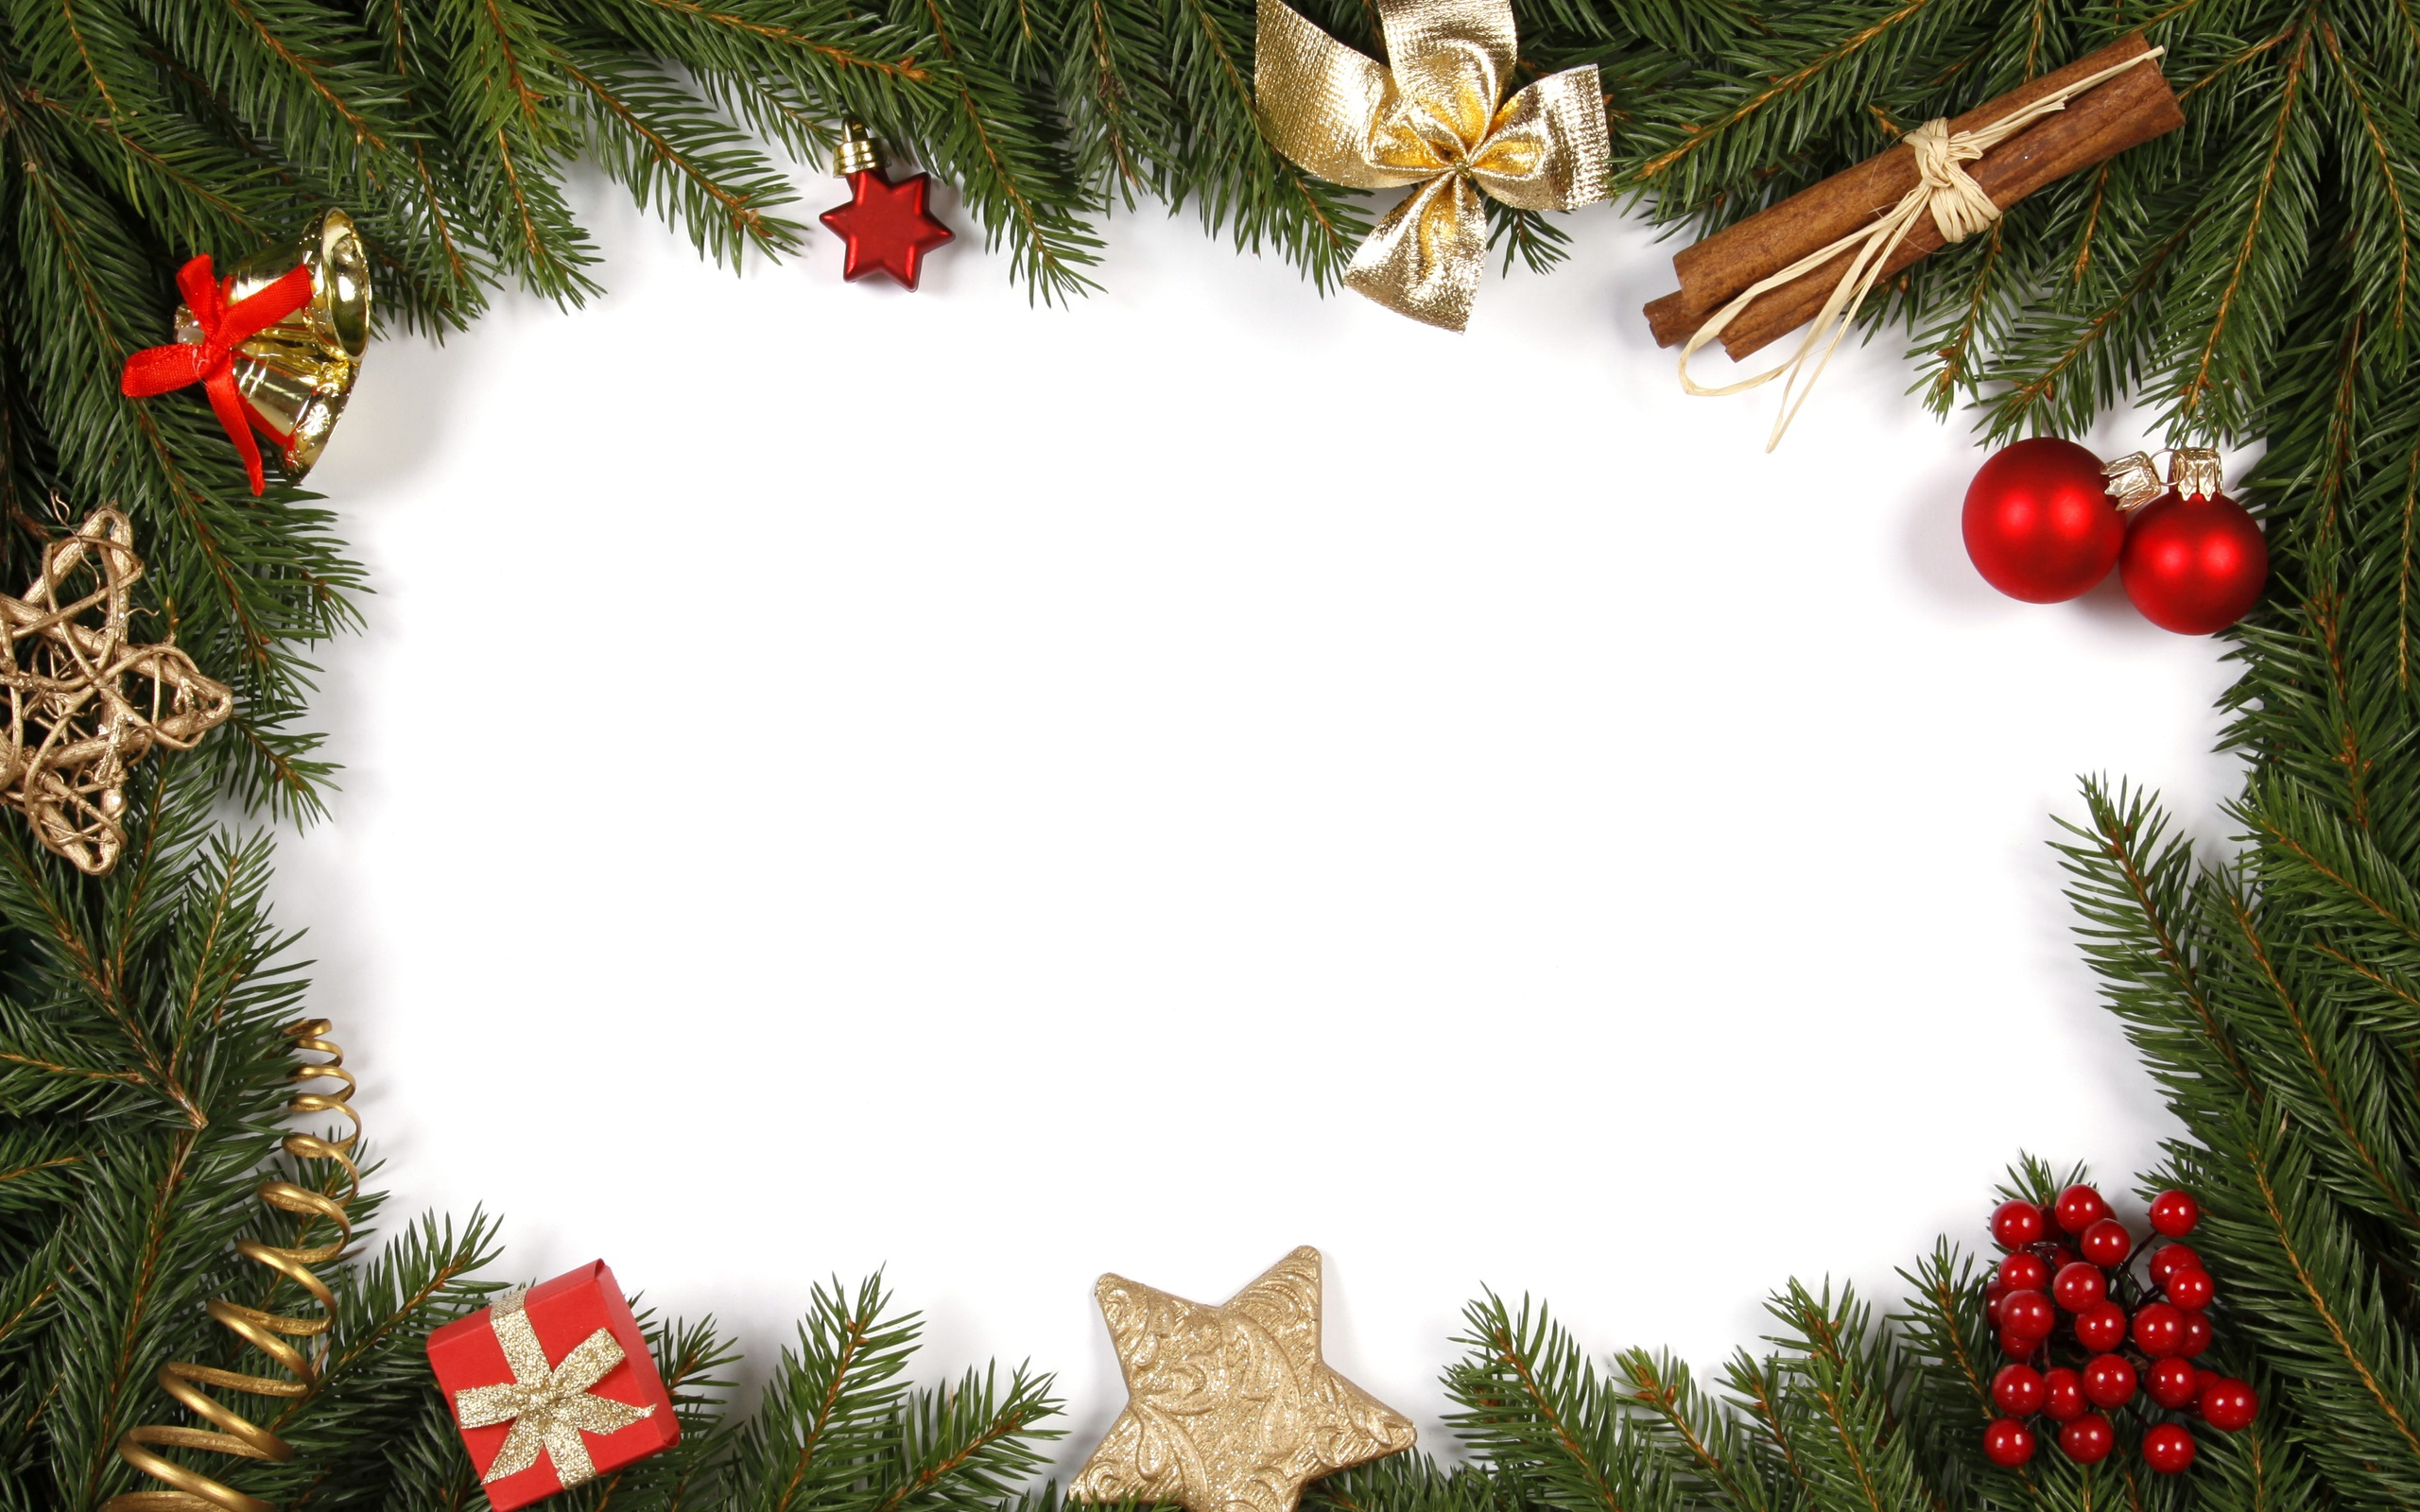 148 1480231 christmas decorations christmas facebook banners free